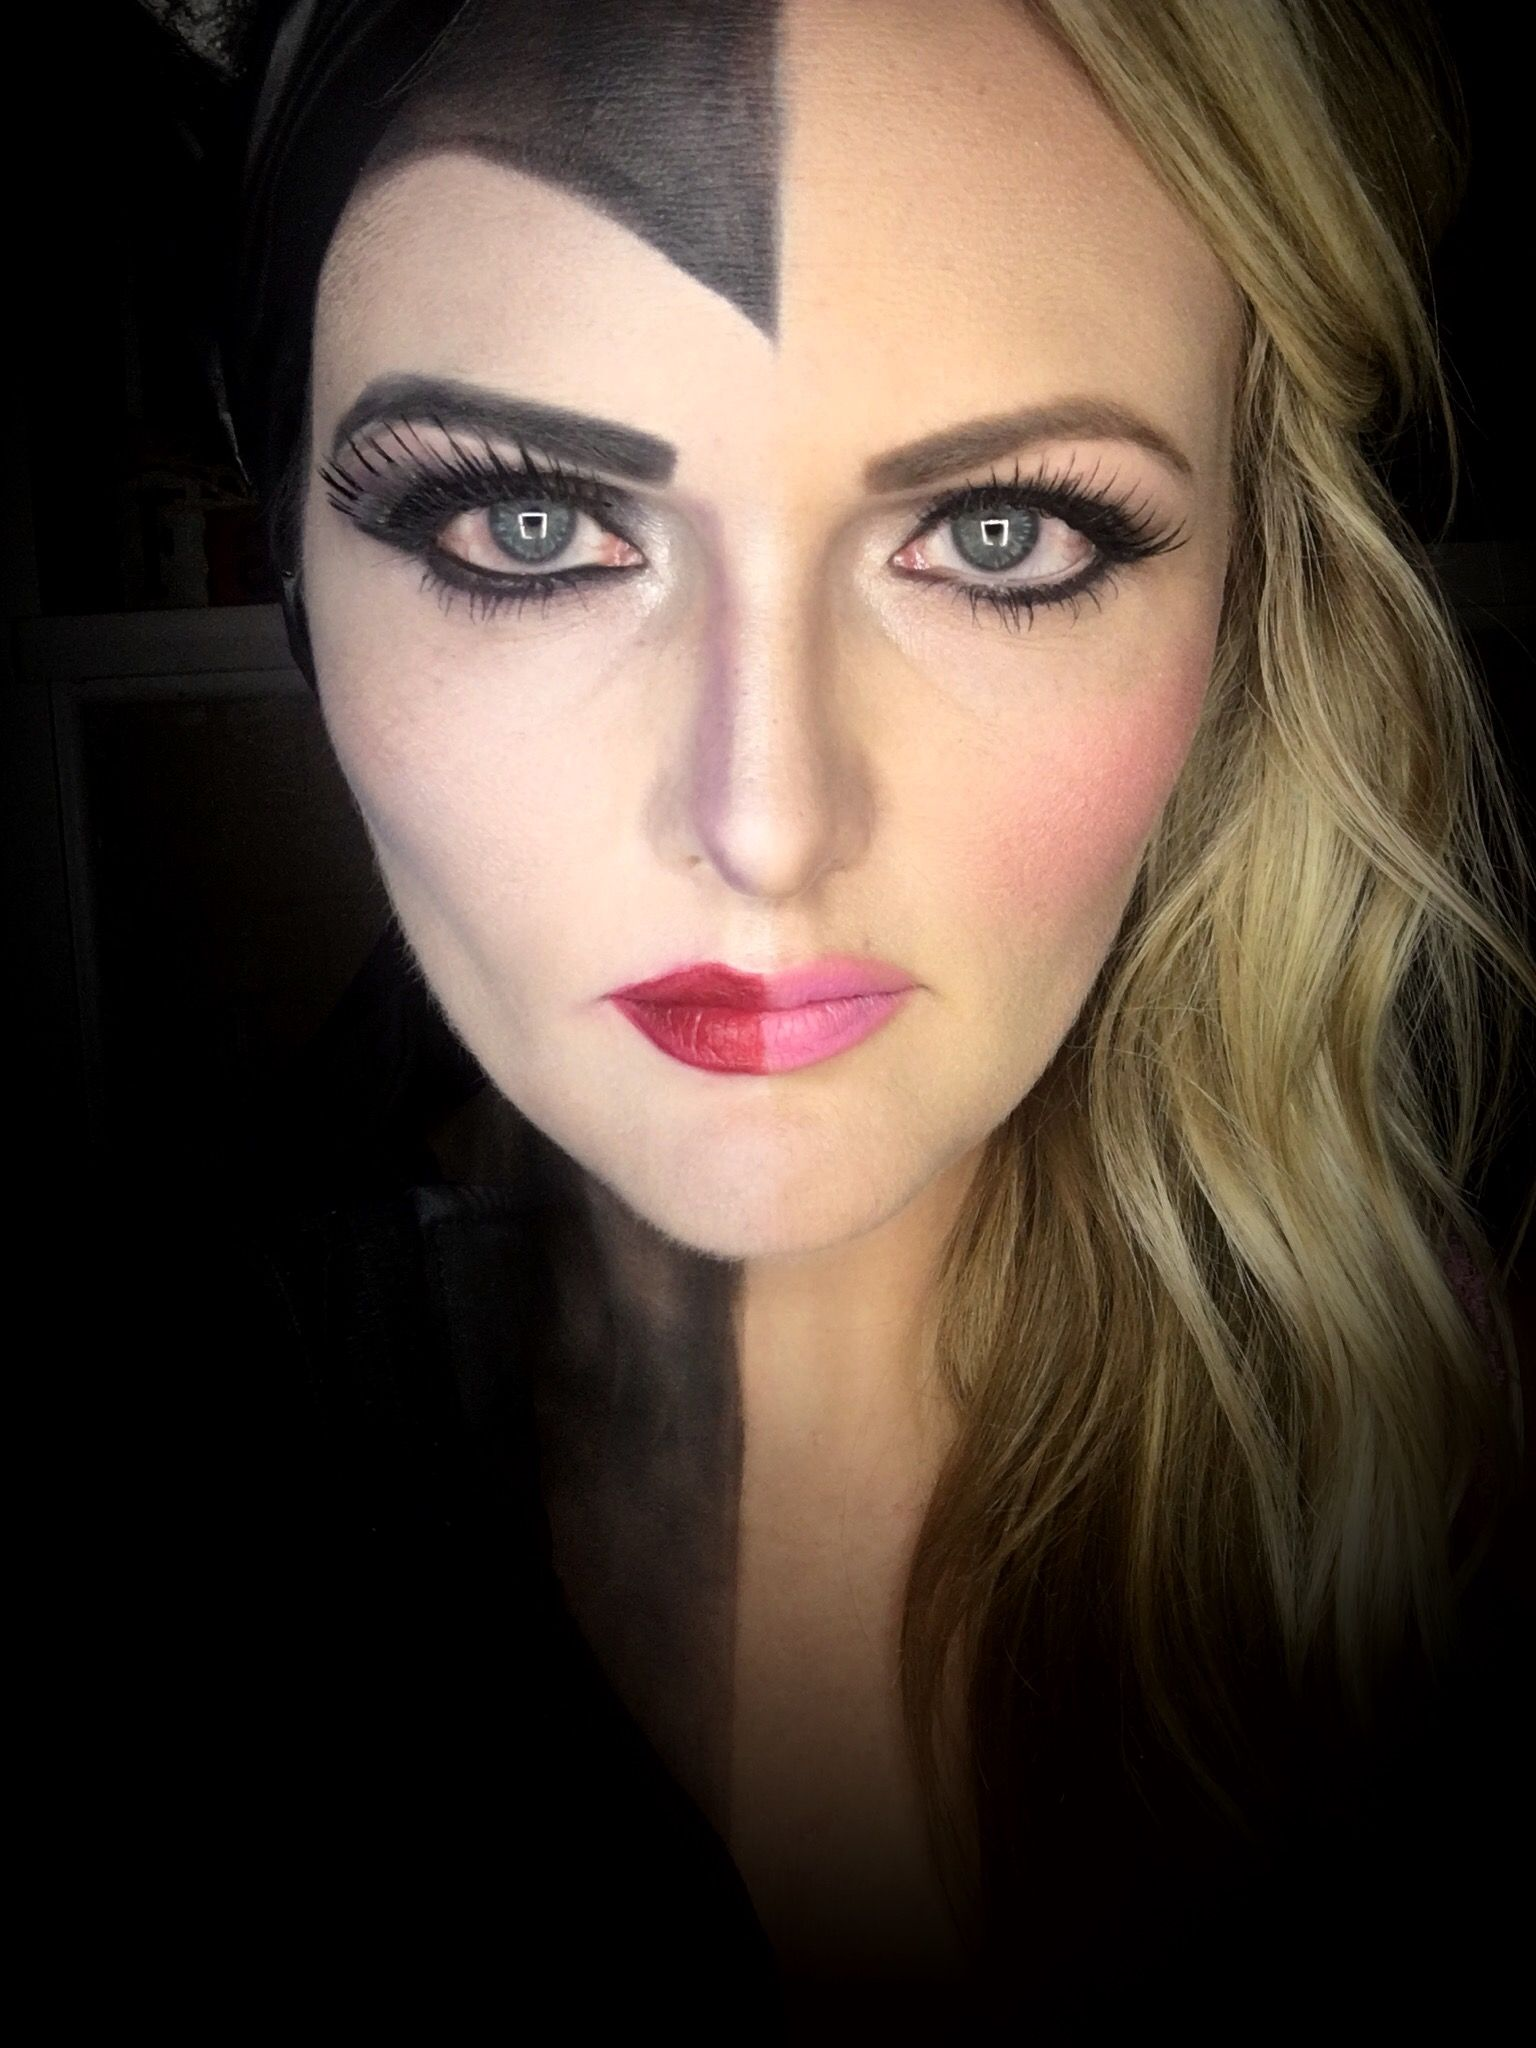 """""""It is our choices that determine who we really are."""" -Princess Aurora, Sleeping Beauty #splitpersonalities #makeupbylacee #LimeLightByAlcone I have more to come! Feel free to share."""